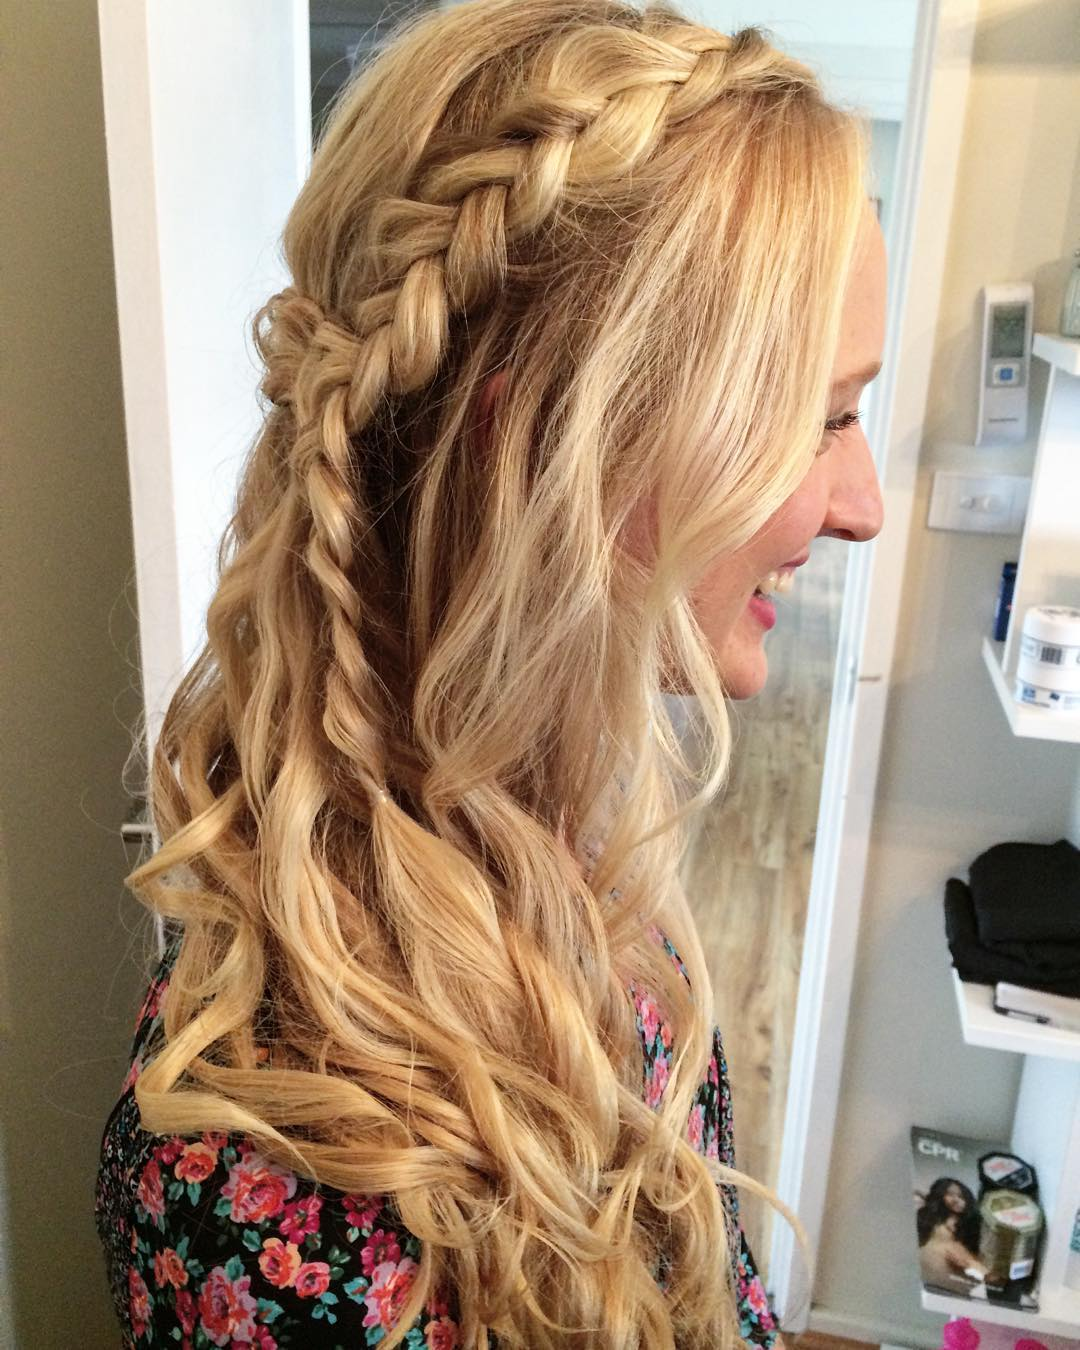 Beautiful Braided Hairstyle for Girl